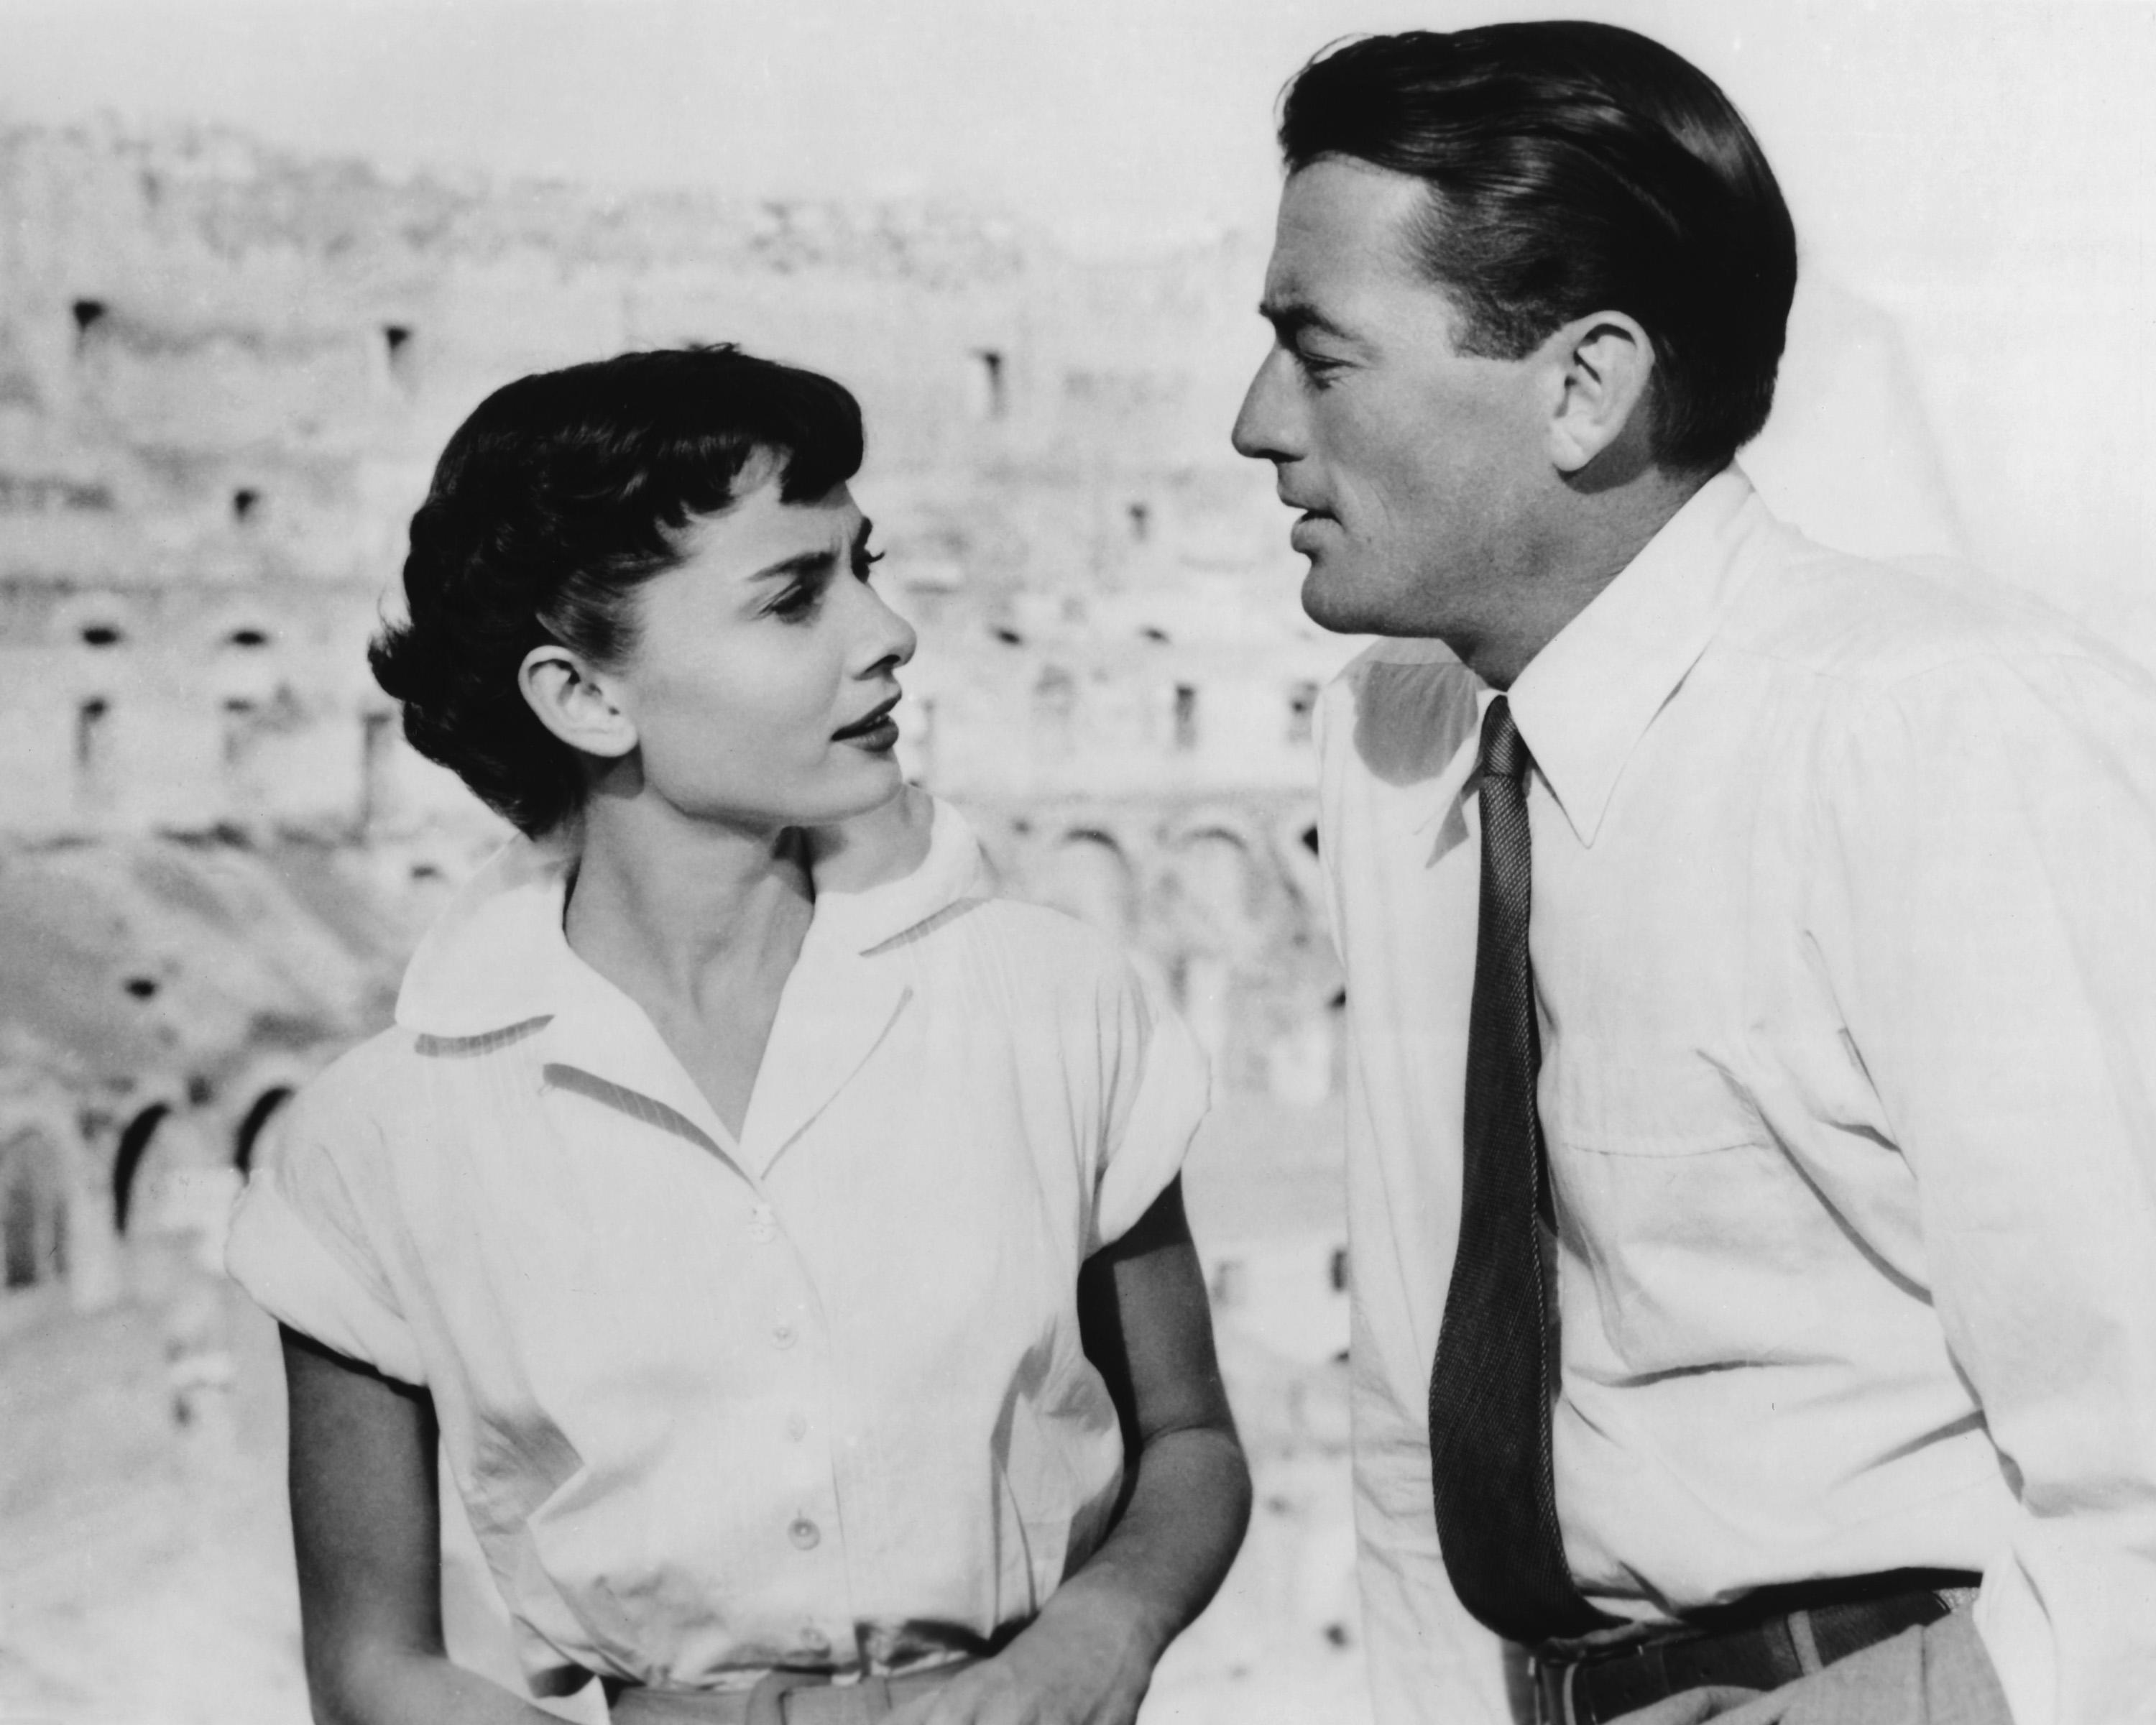 Actors Gregory Peck as Joe Bradley and Audrey Hepburn as Princess Ann in the film 'Roman Holiday', 1953. Here they visit the Colosseum in Rome together. (Photo by Silver Screen Collection/Getty Images)